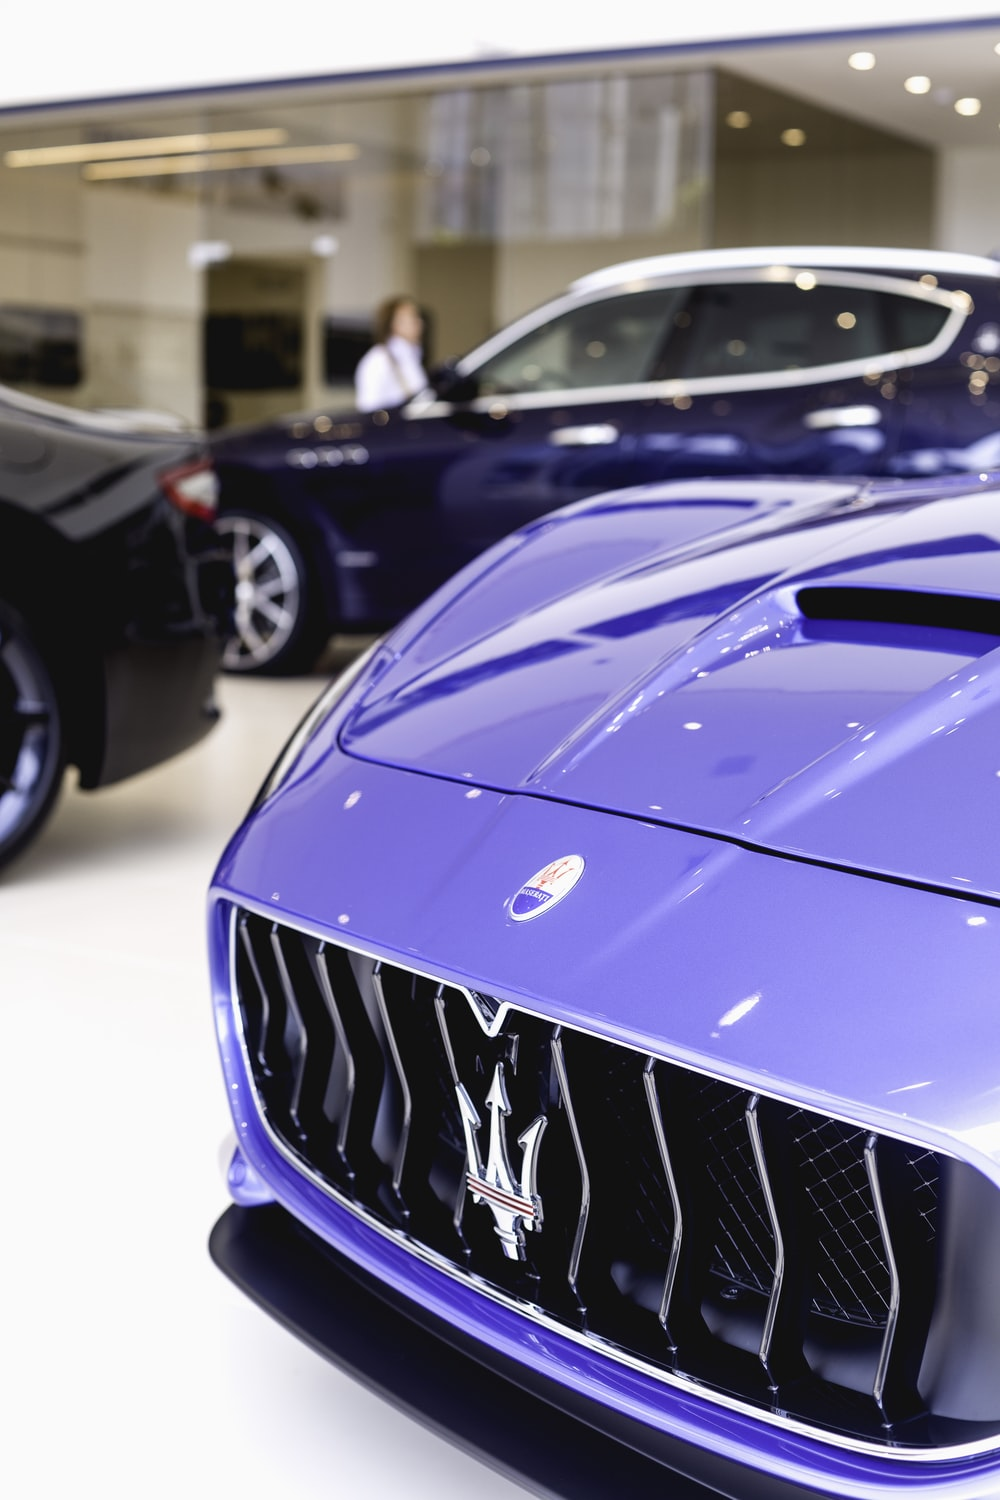 blue Maserati vehicle emblem